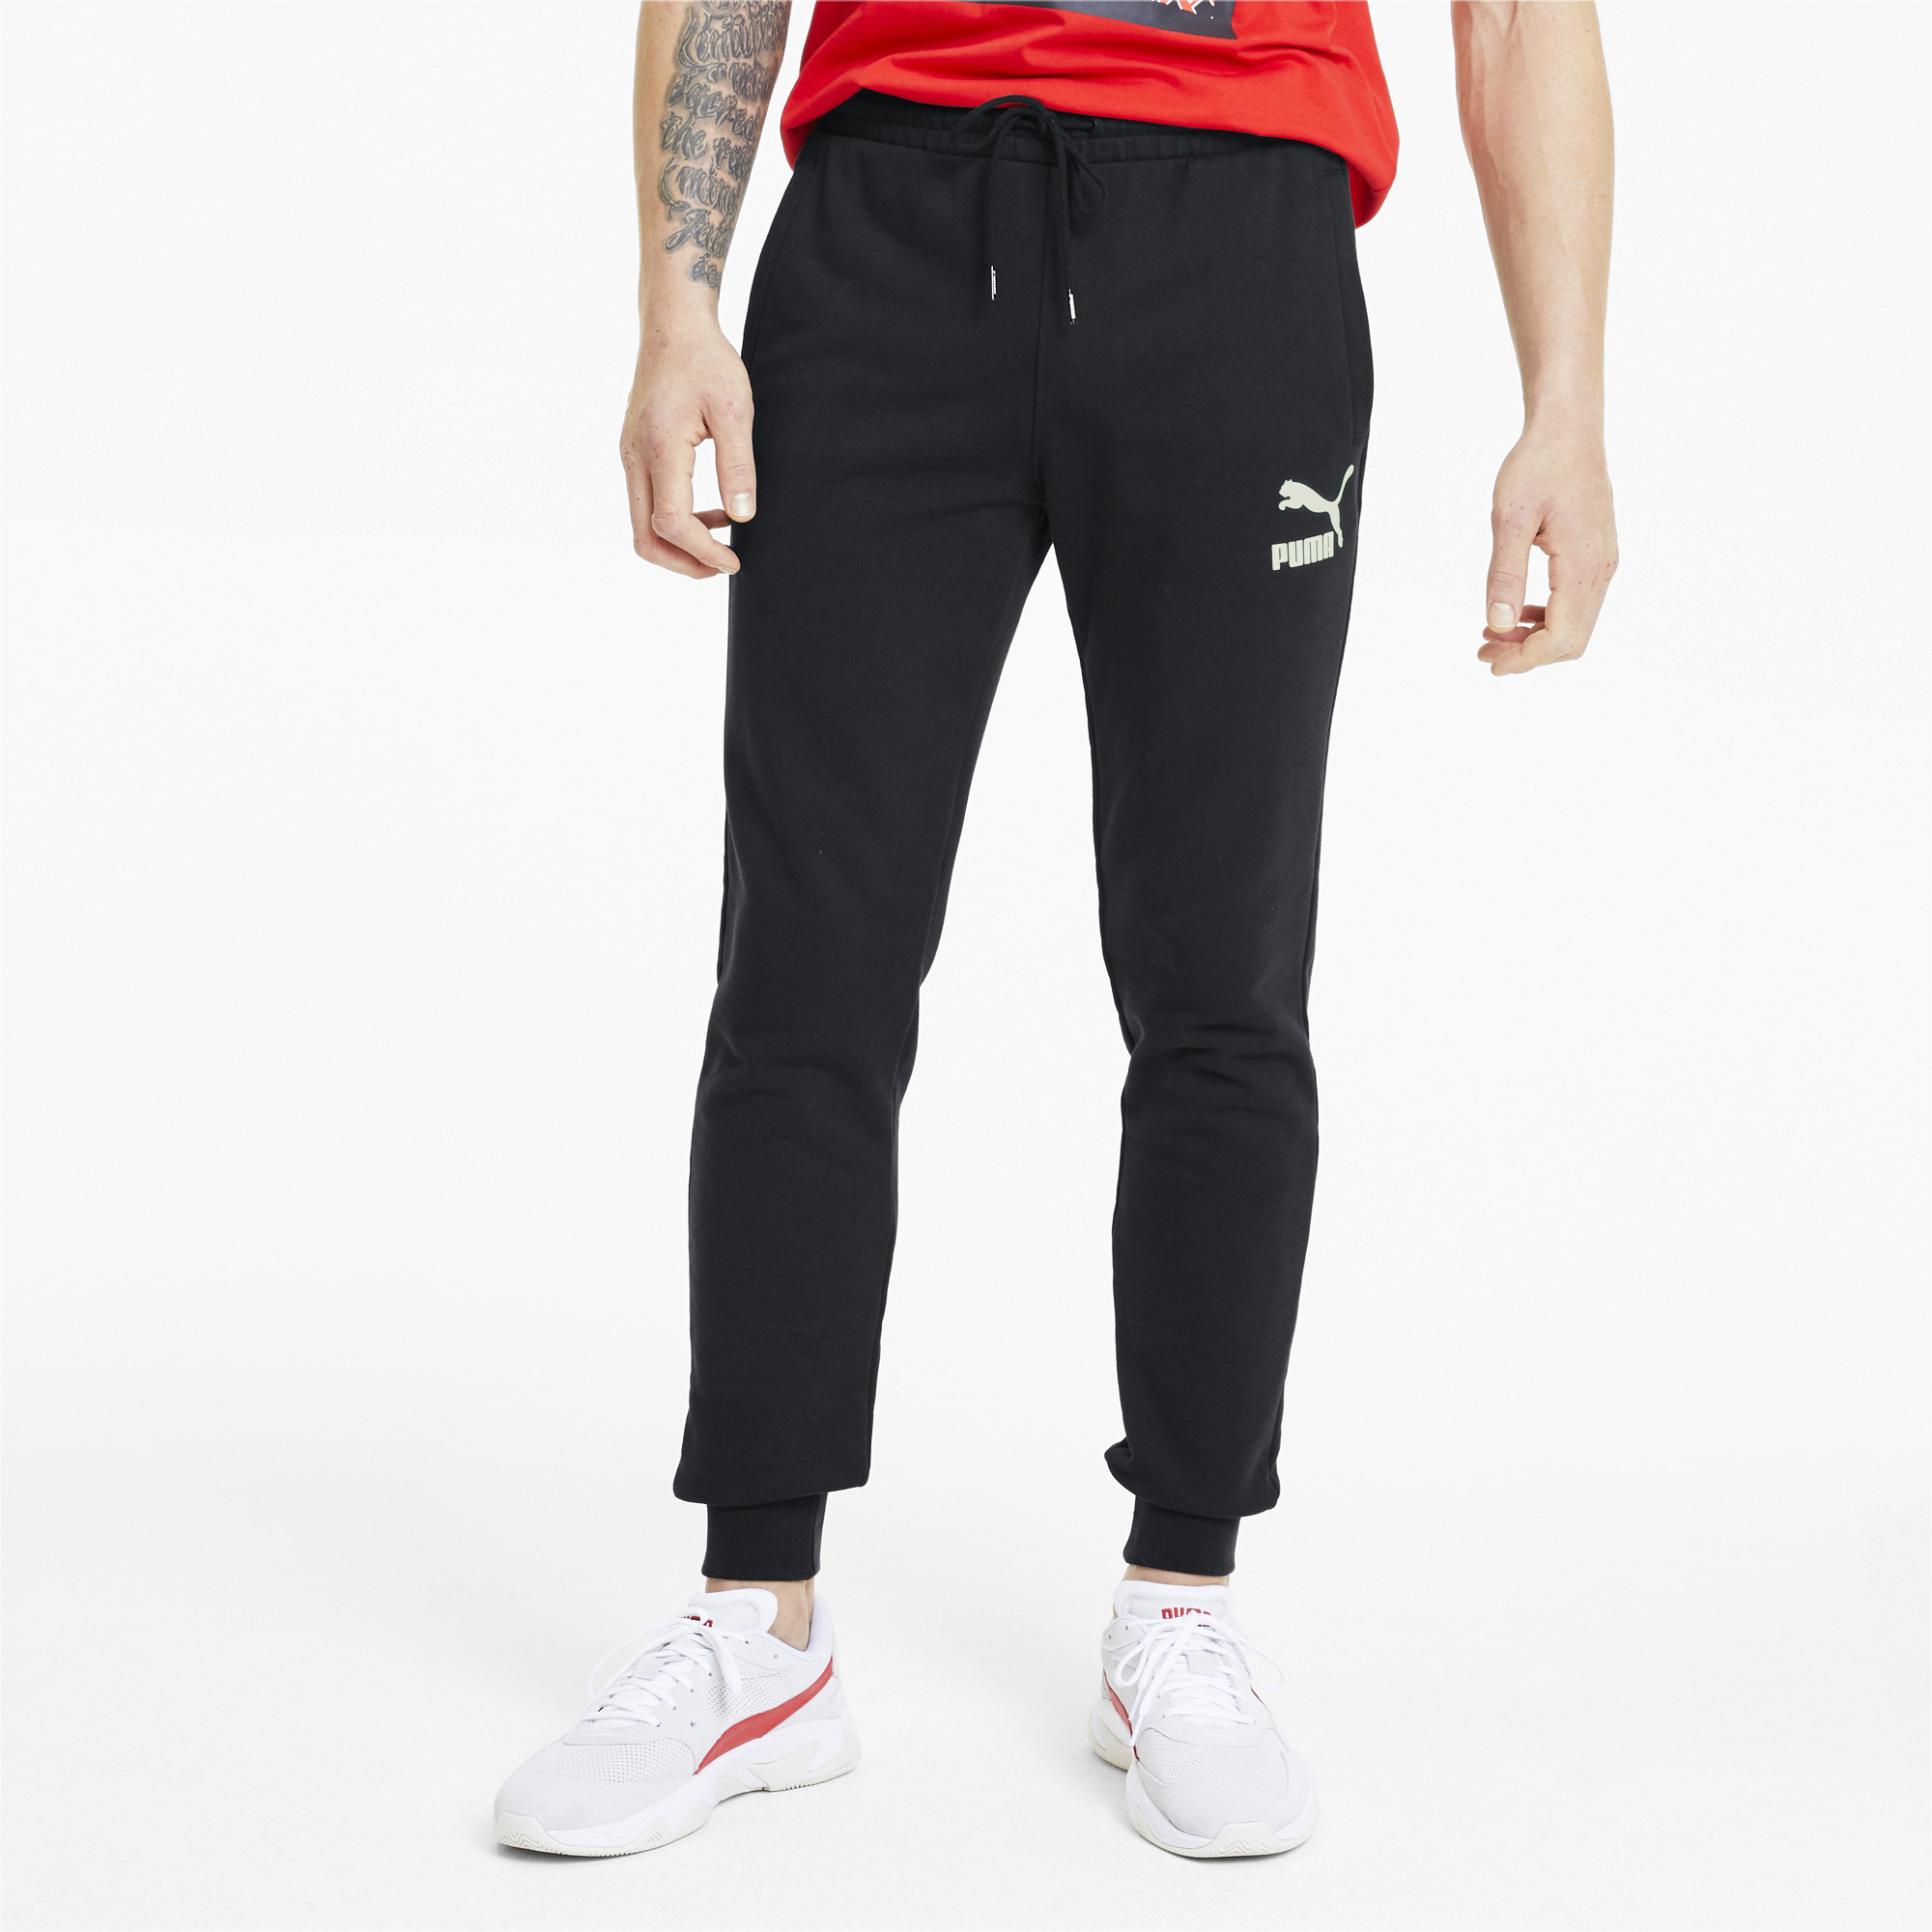 PUMA-Classics-Men-039-s-Cuffed-Sweatpants-Men-Knitted-Pants-Sport-Classics thumbnail 4